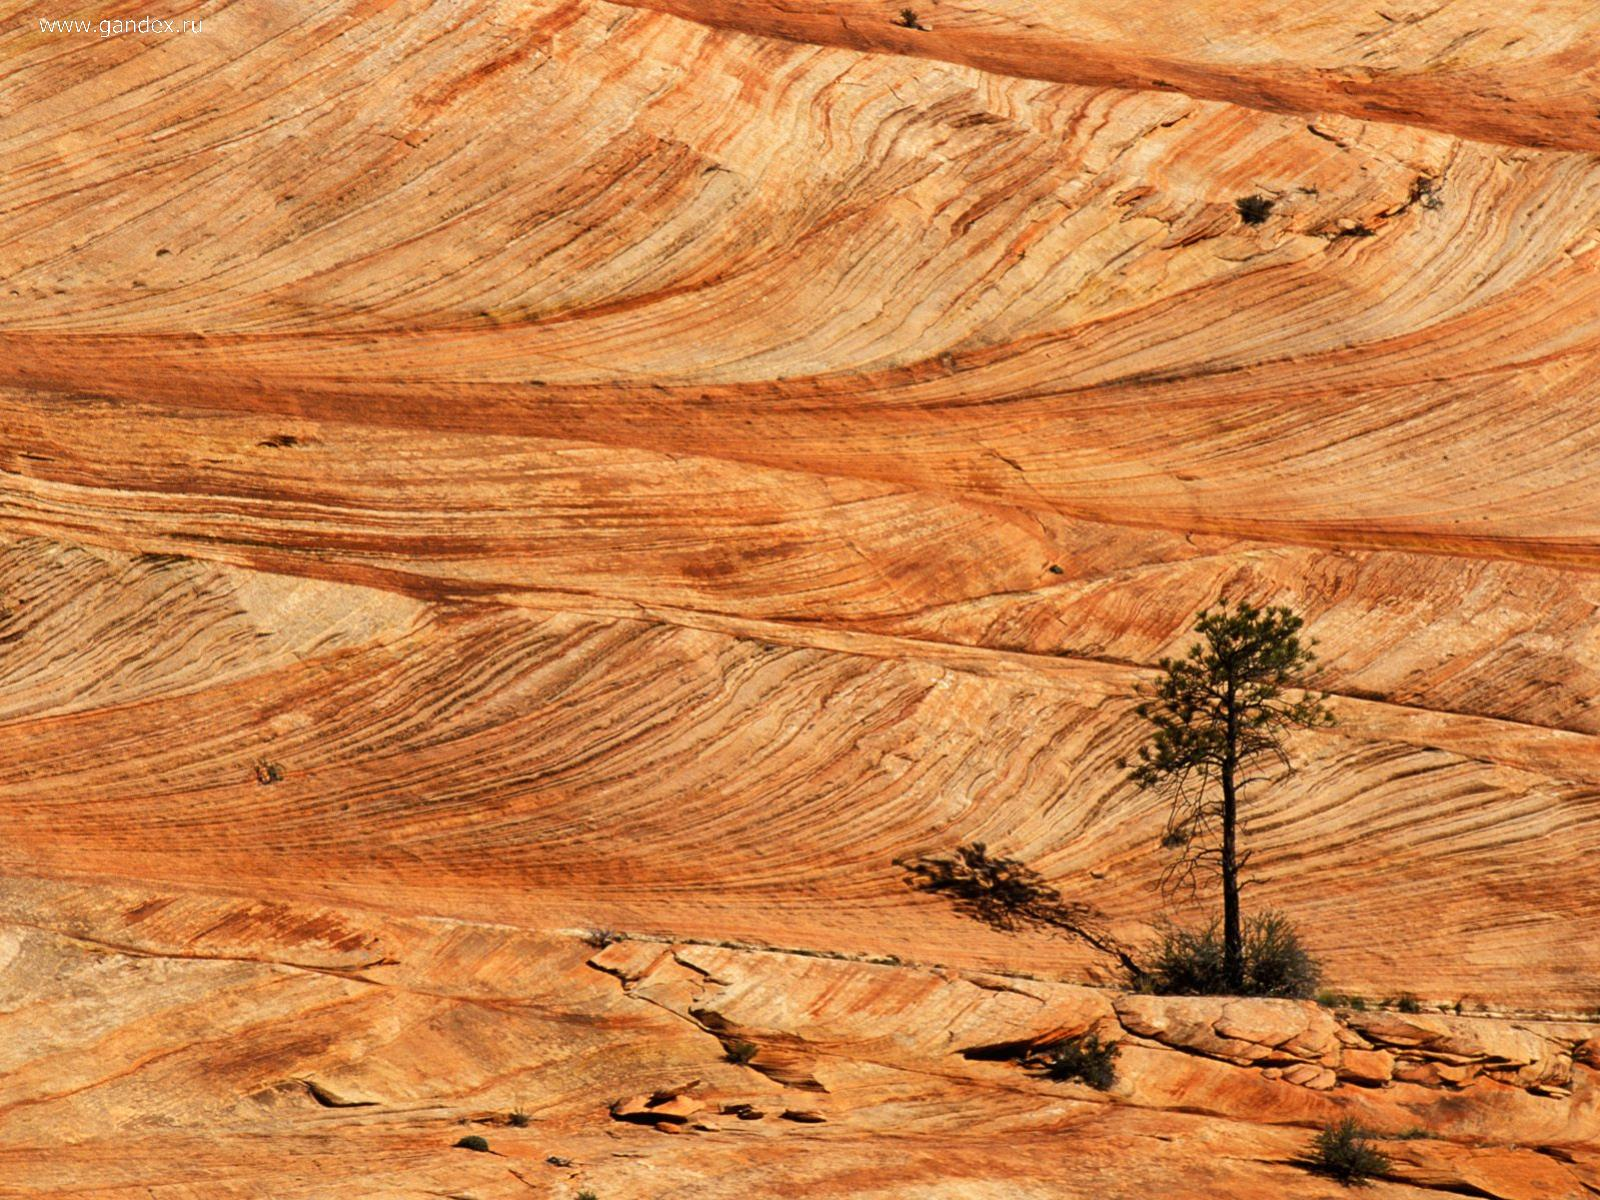 A single tree on a rocky soil, Zion National Park in Utah, wallpaper.